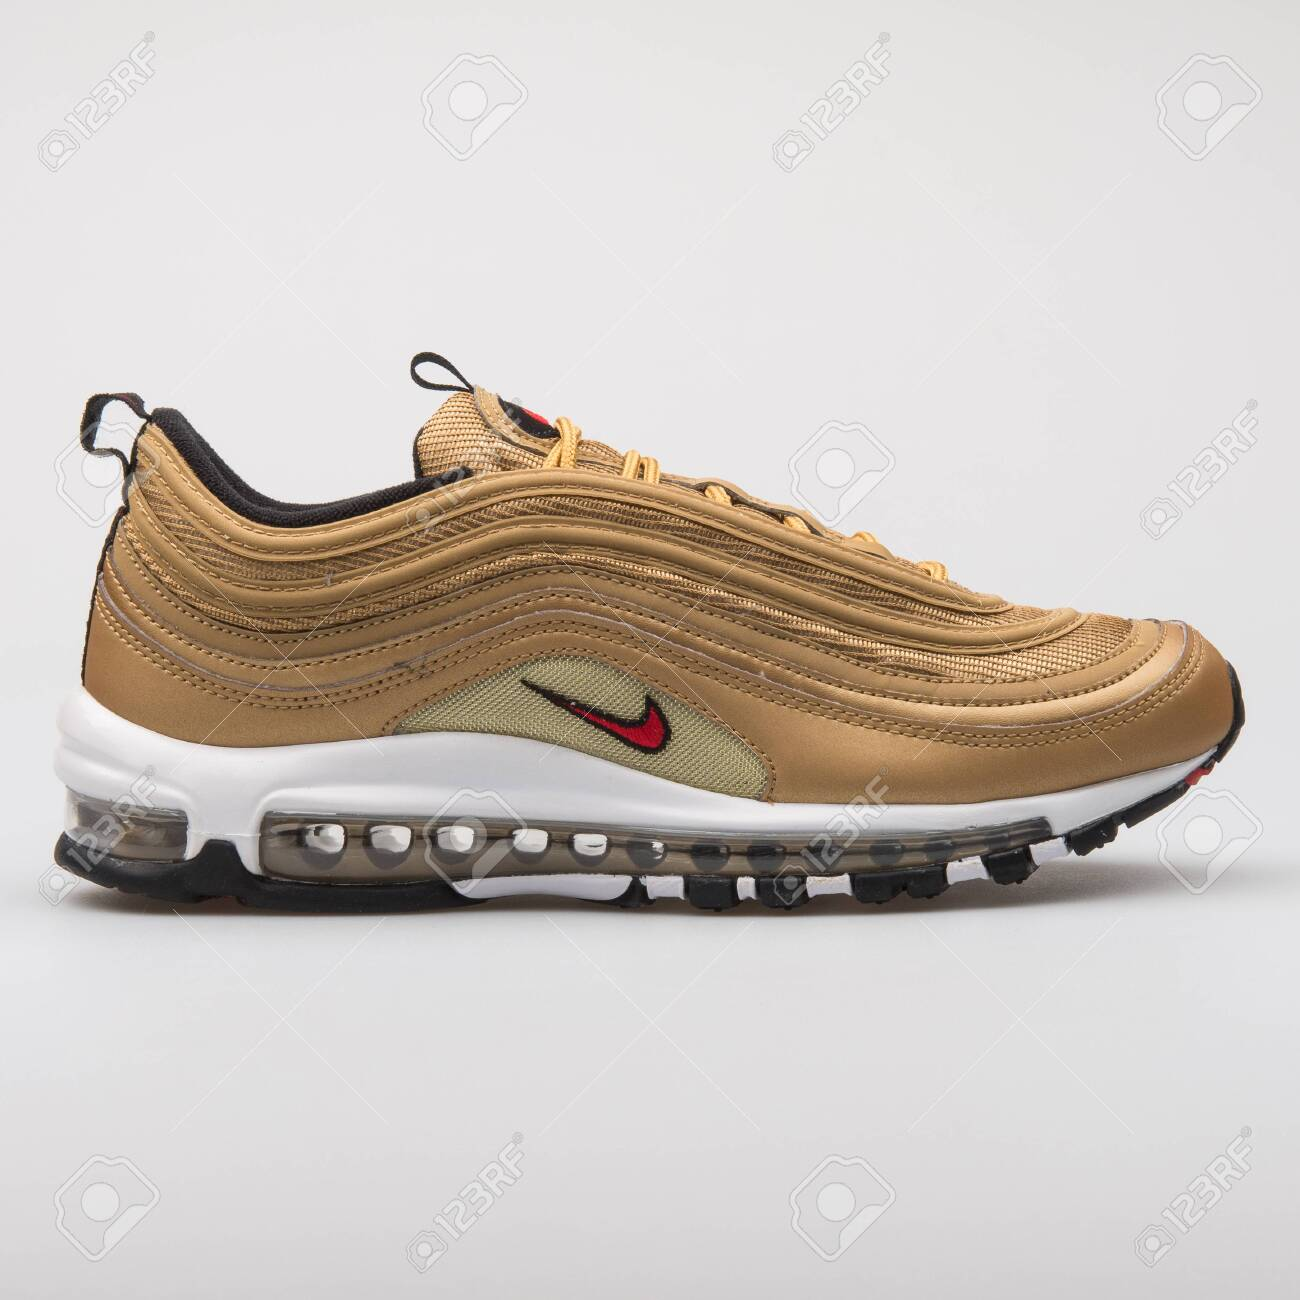 Preparación maceta Crítico  VIENNA, AUSTRIA - AUGUST 7, 2017: Nike Air Max 97 OG QS Gold.. Stock Photo,  Picture And Royalty Free Image. Image 121601645.